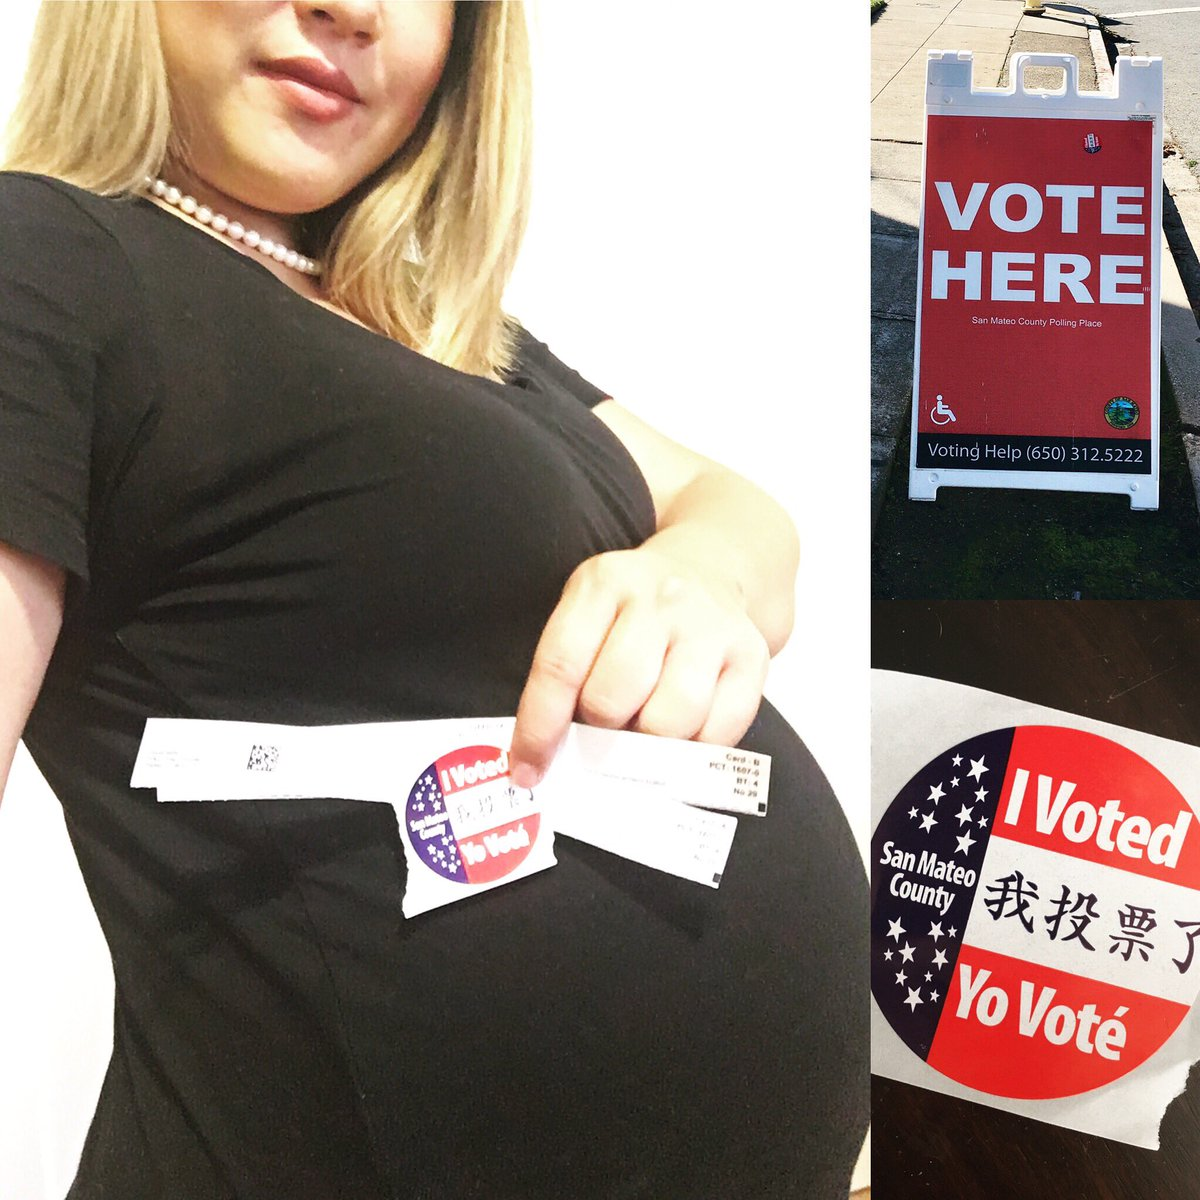 "<div class=""meta image-caption""><div class=""origin-logo origin-image none""><span>none</span></div><span class=""caption-text"">It's Election Day in the Bay Area, and ABC7 News viewers are sending in their photos using #abc7now. (KimmieSakamoto/Twitter)</span></div>"